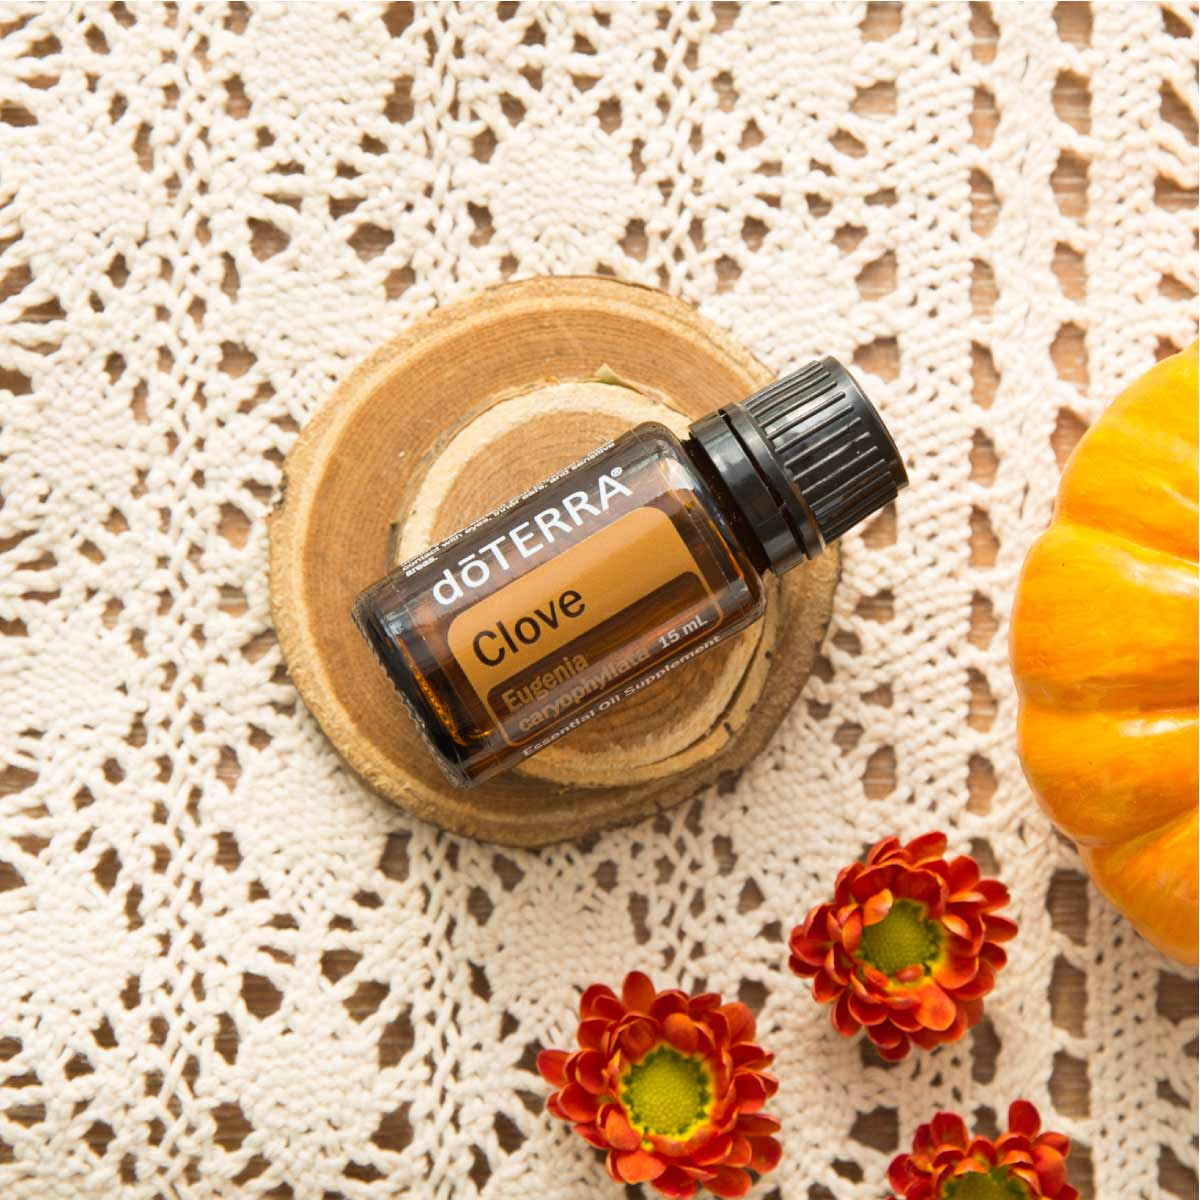 Bottle of doTERRA Clove essential oil. Wondering how to use Clove oil? Try using Clove oil as part of a warming massage, to add flavor to baked goods, or combine with water for a natural mouth rinse.